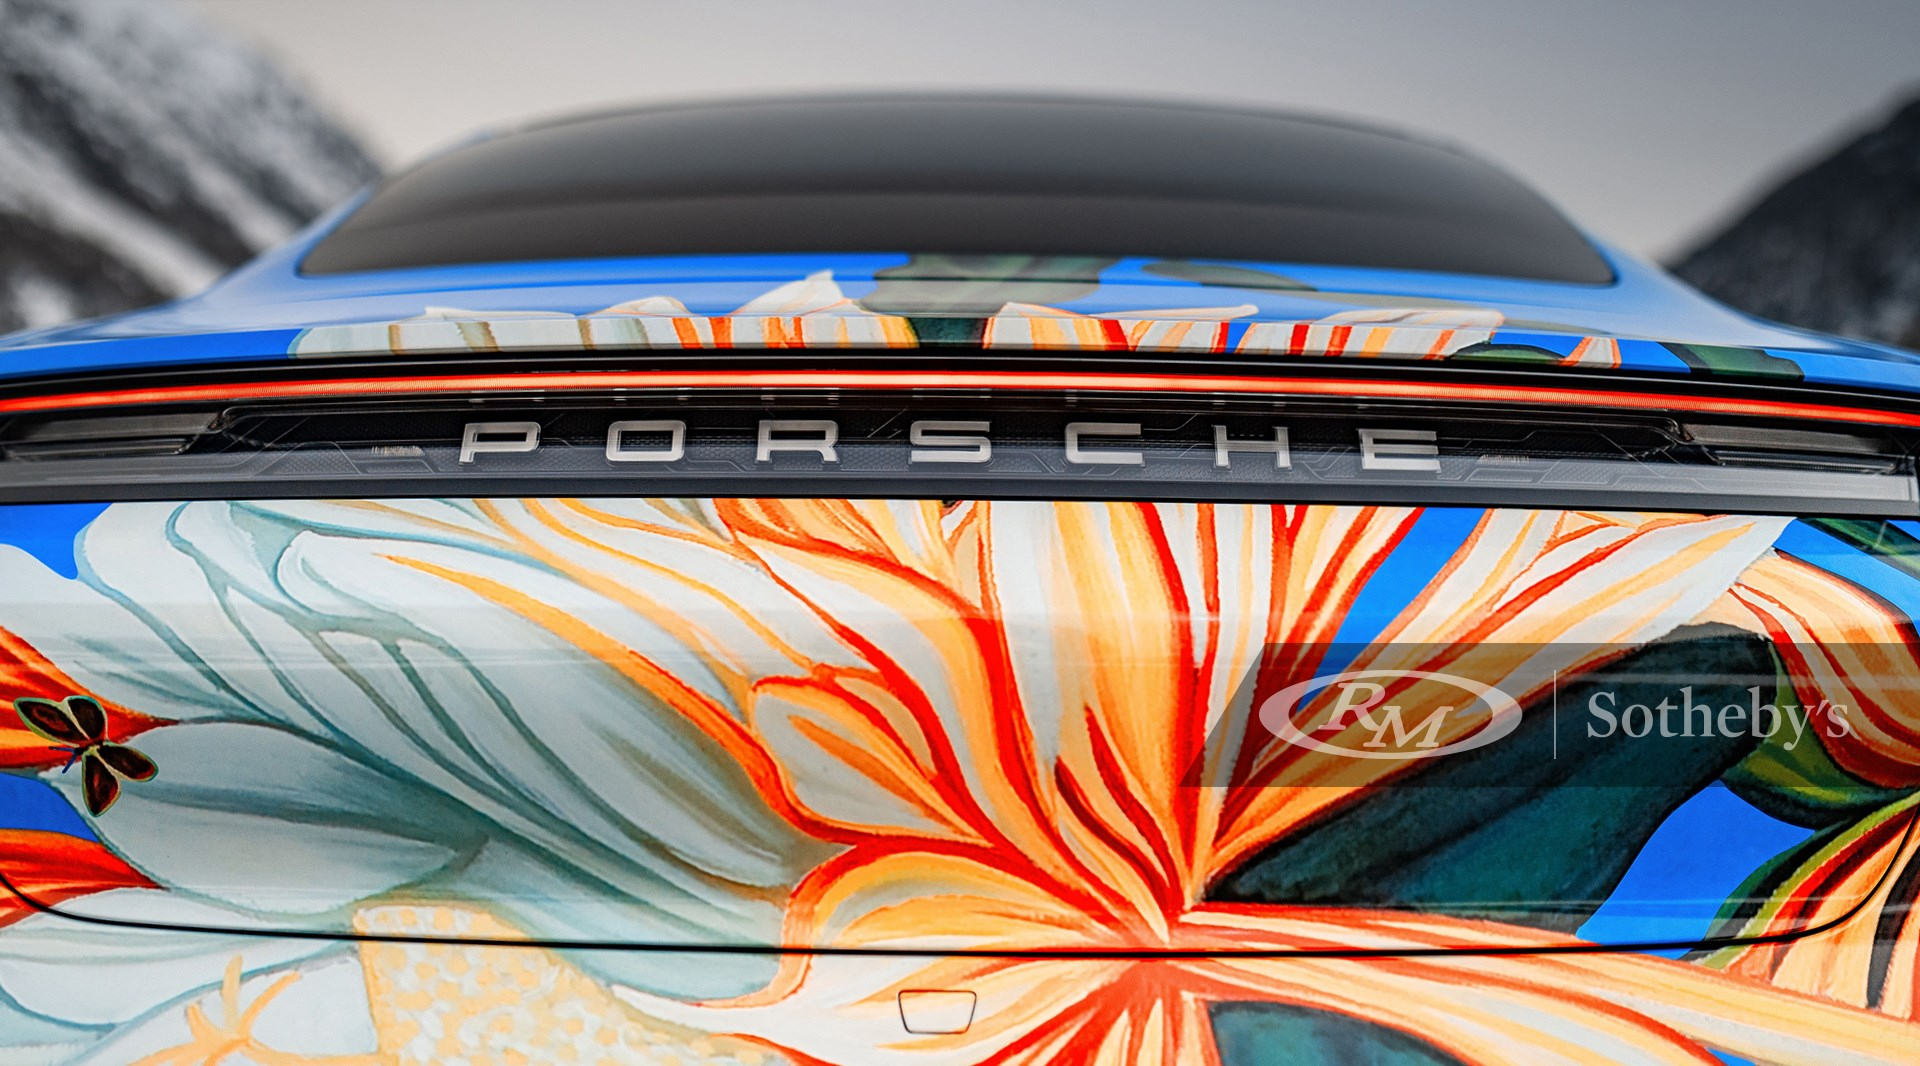 2020 Porsche Taycan 4S Artcar by Richard Phillips available at RM Sotheby's Online Only Porsche Taycan Charity Artcar Auction